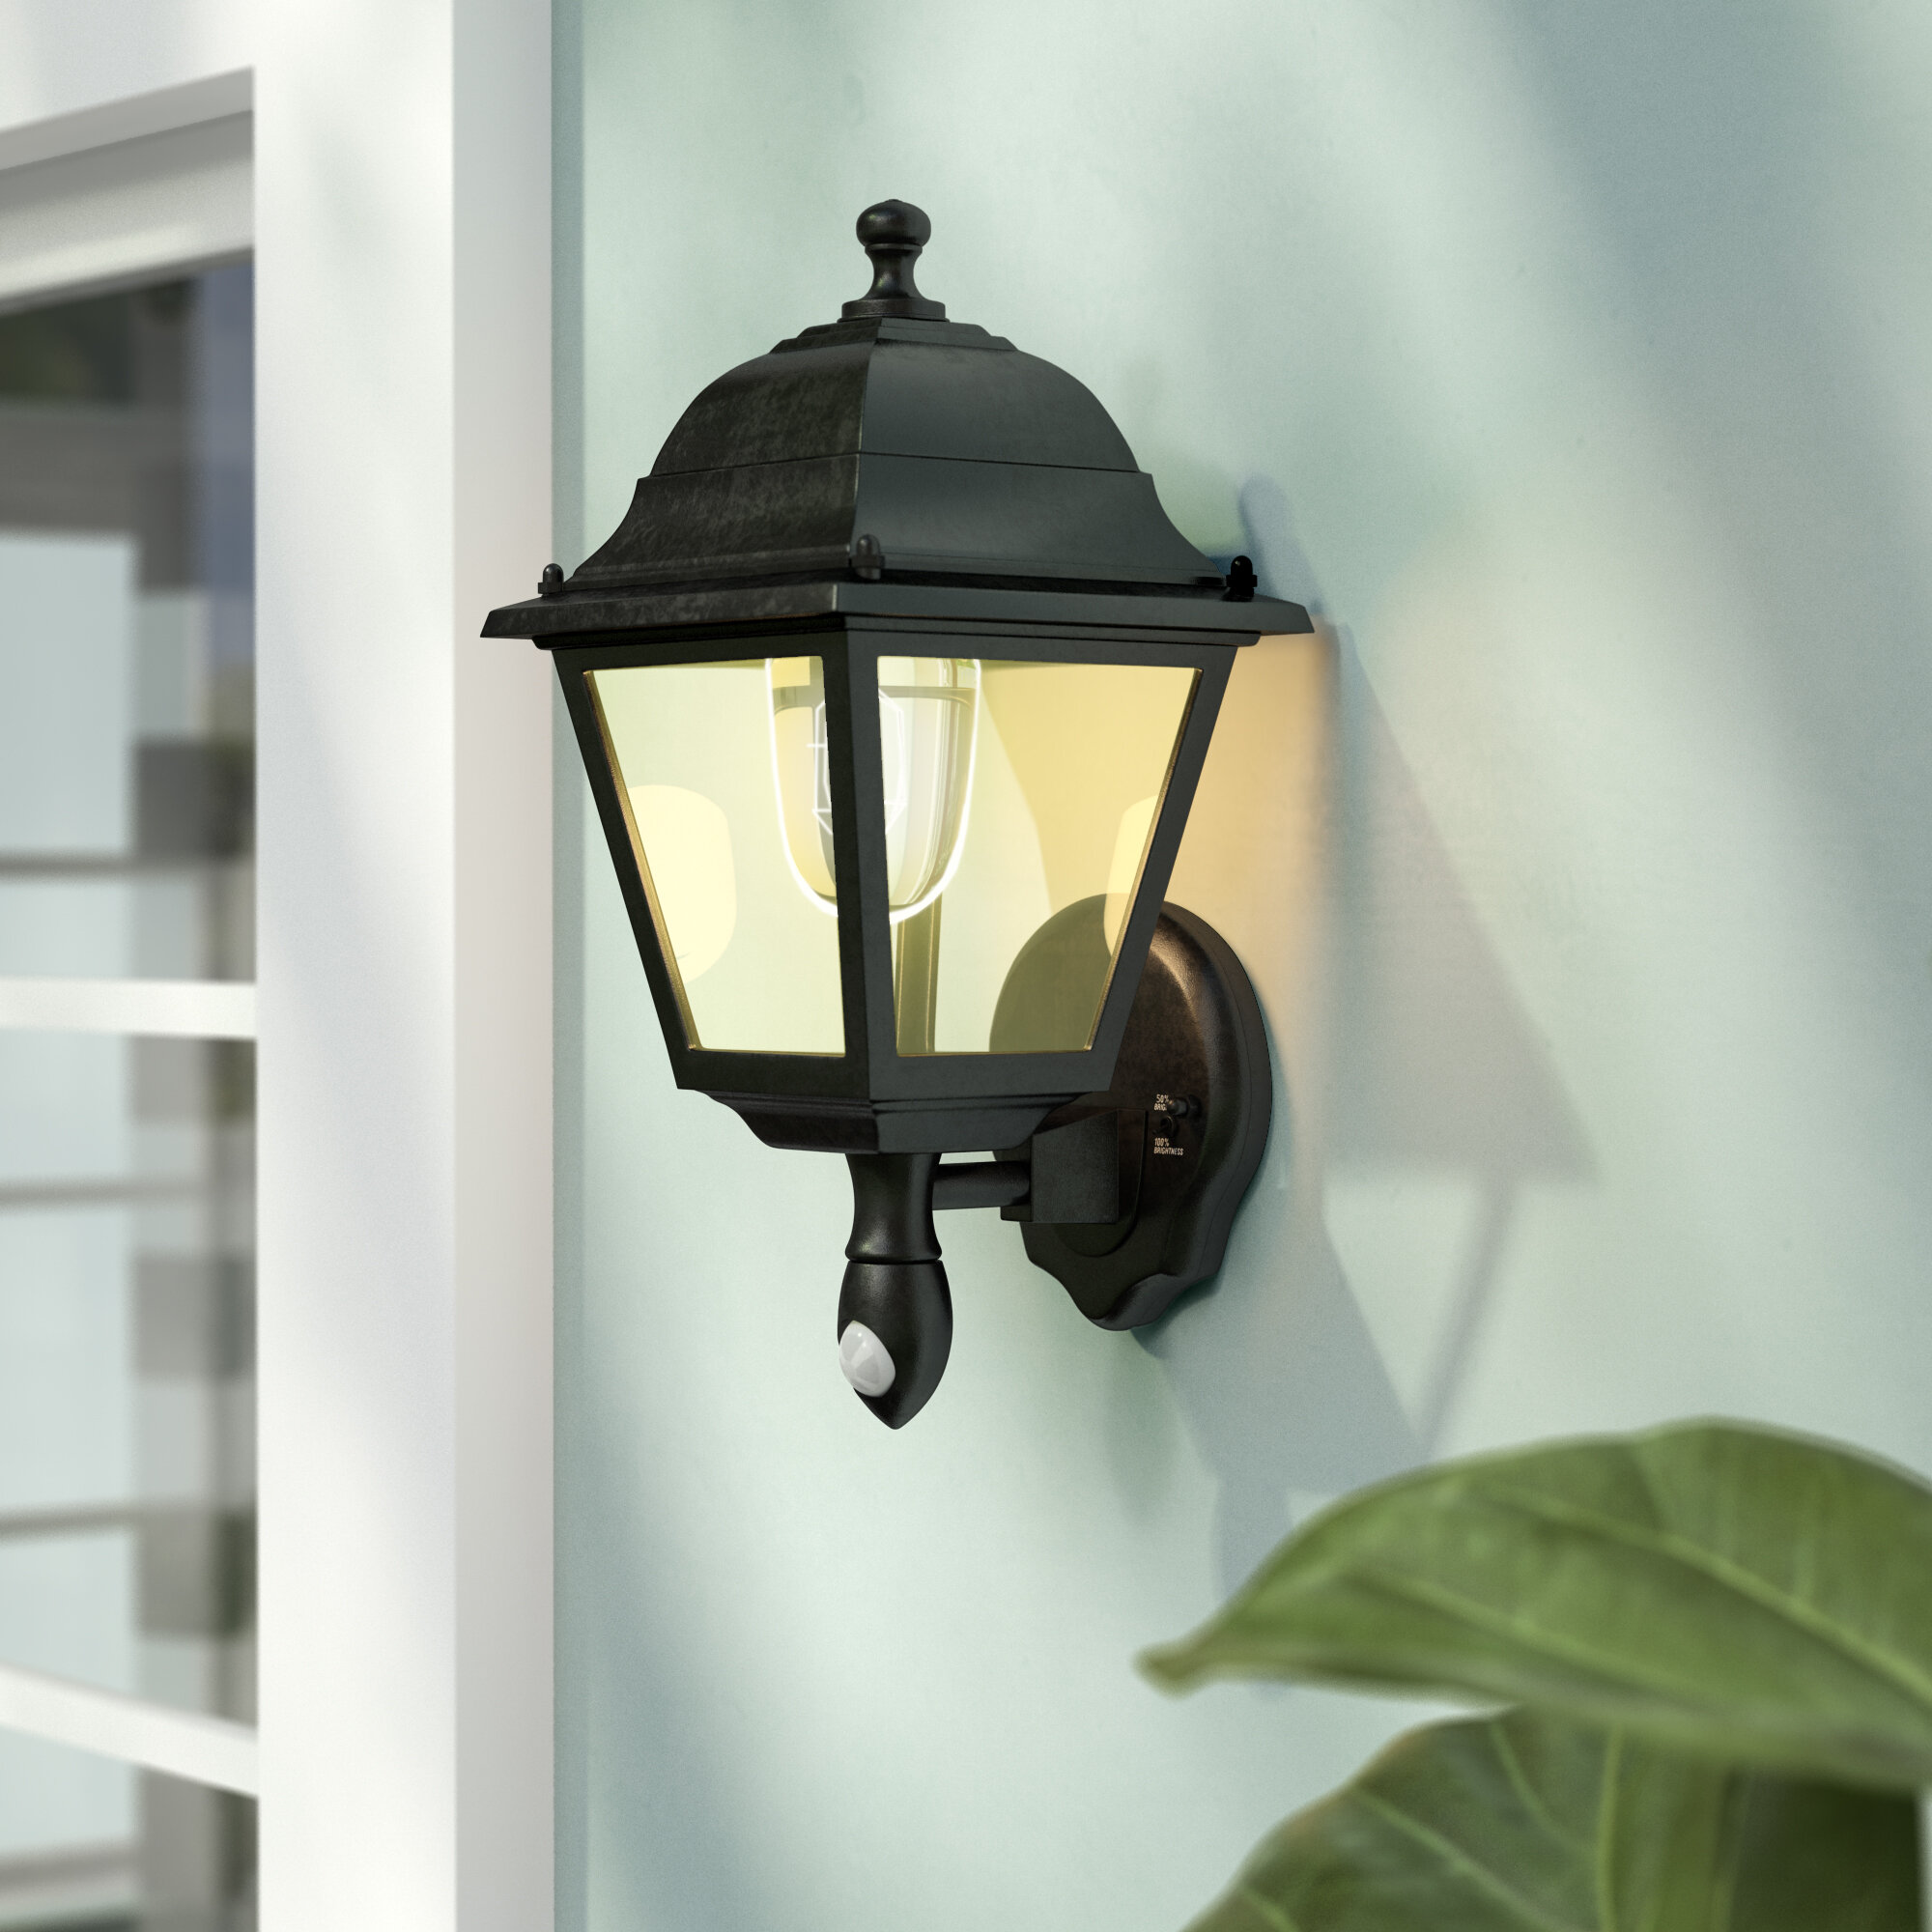 Image of: Decken Wandleuchten Led Wall Sconce Battery Powered Cool White Light Metal Glass Outdoor Porch New Fiscleconsultancy Com